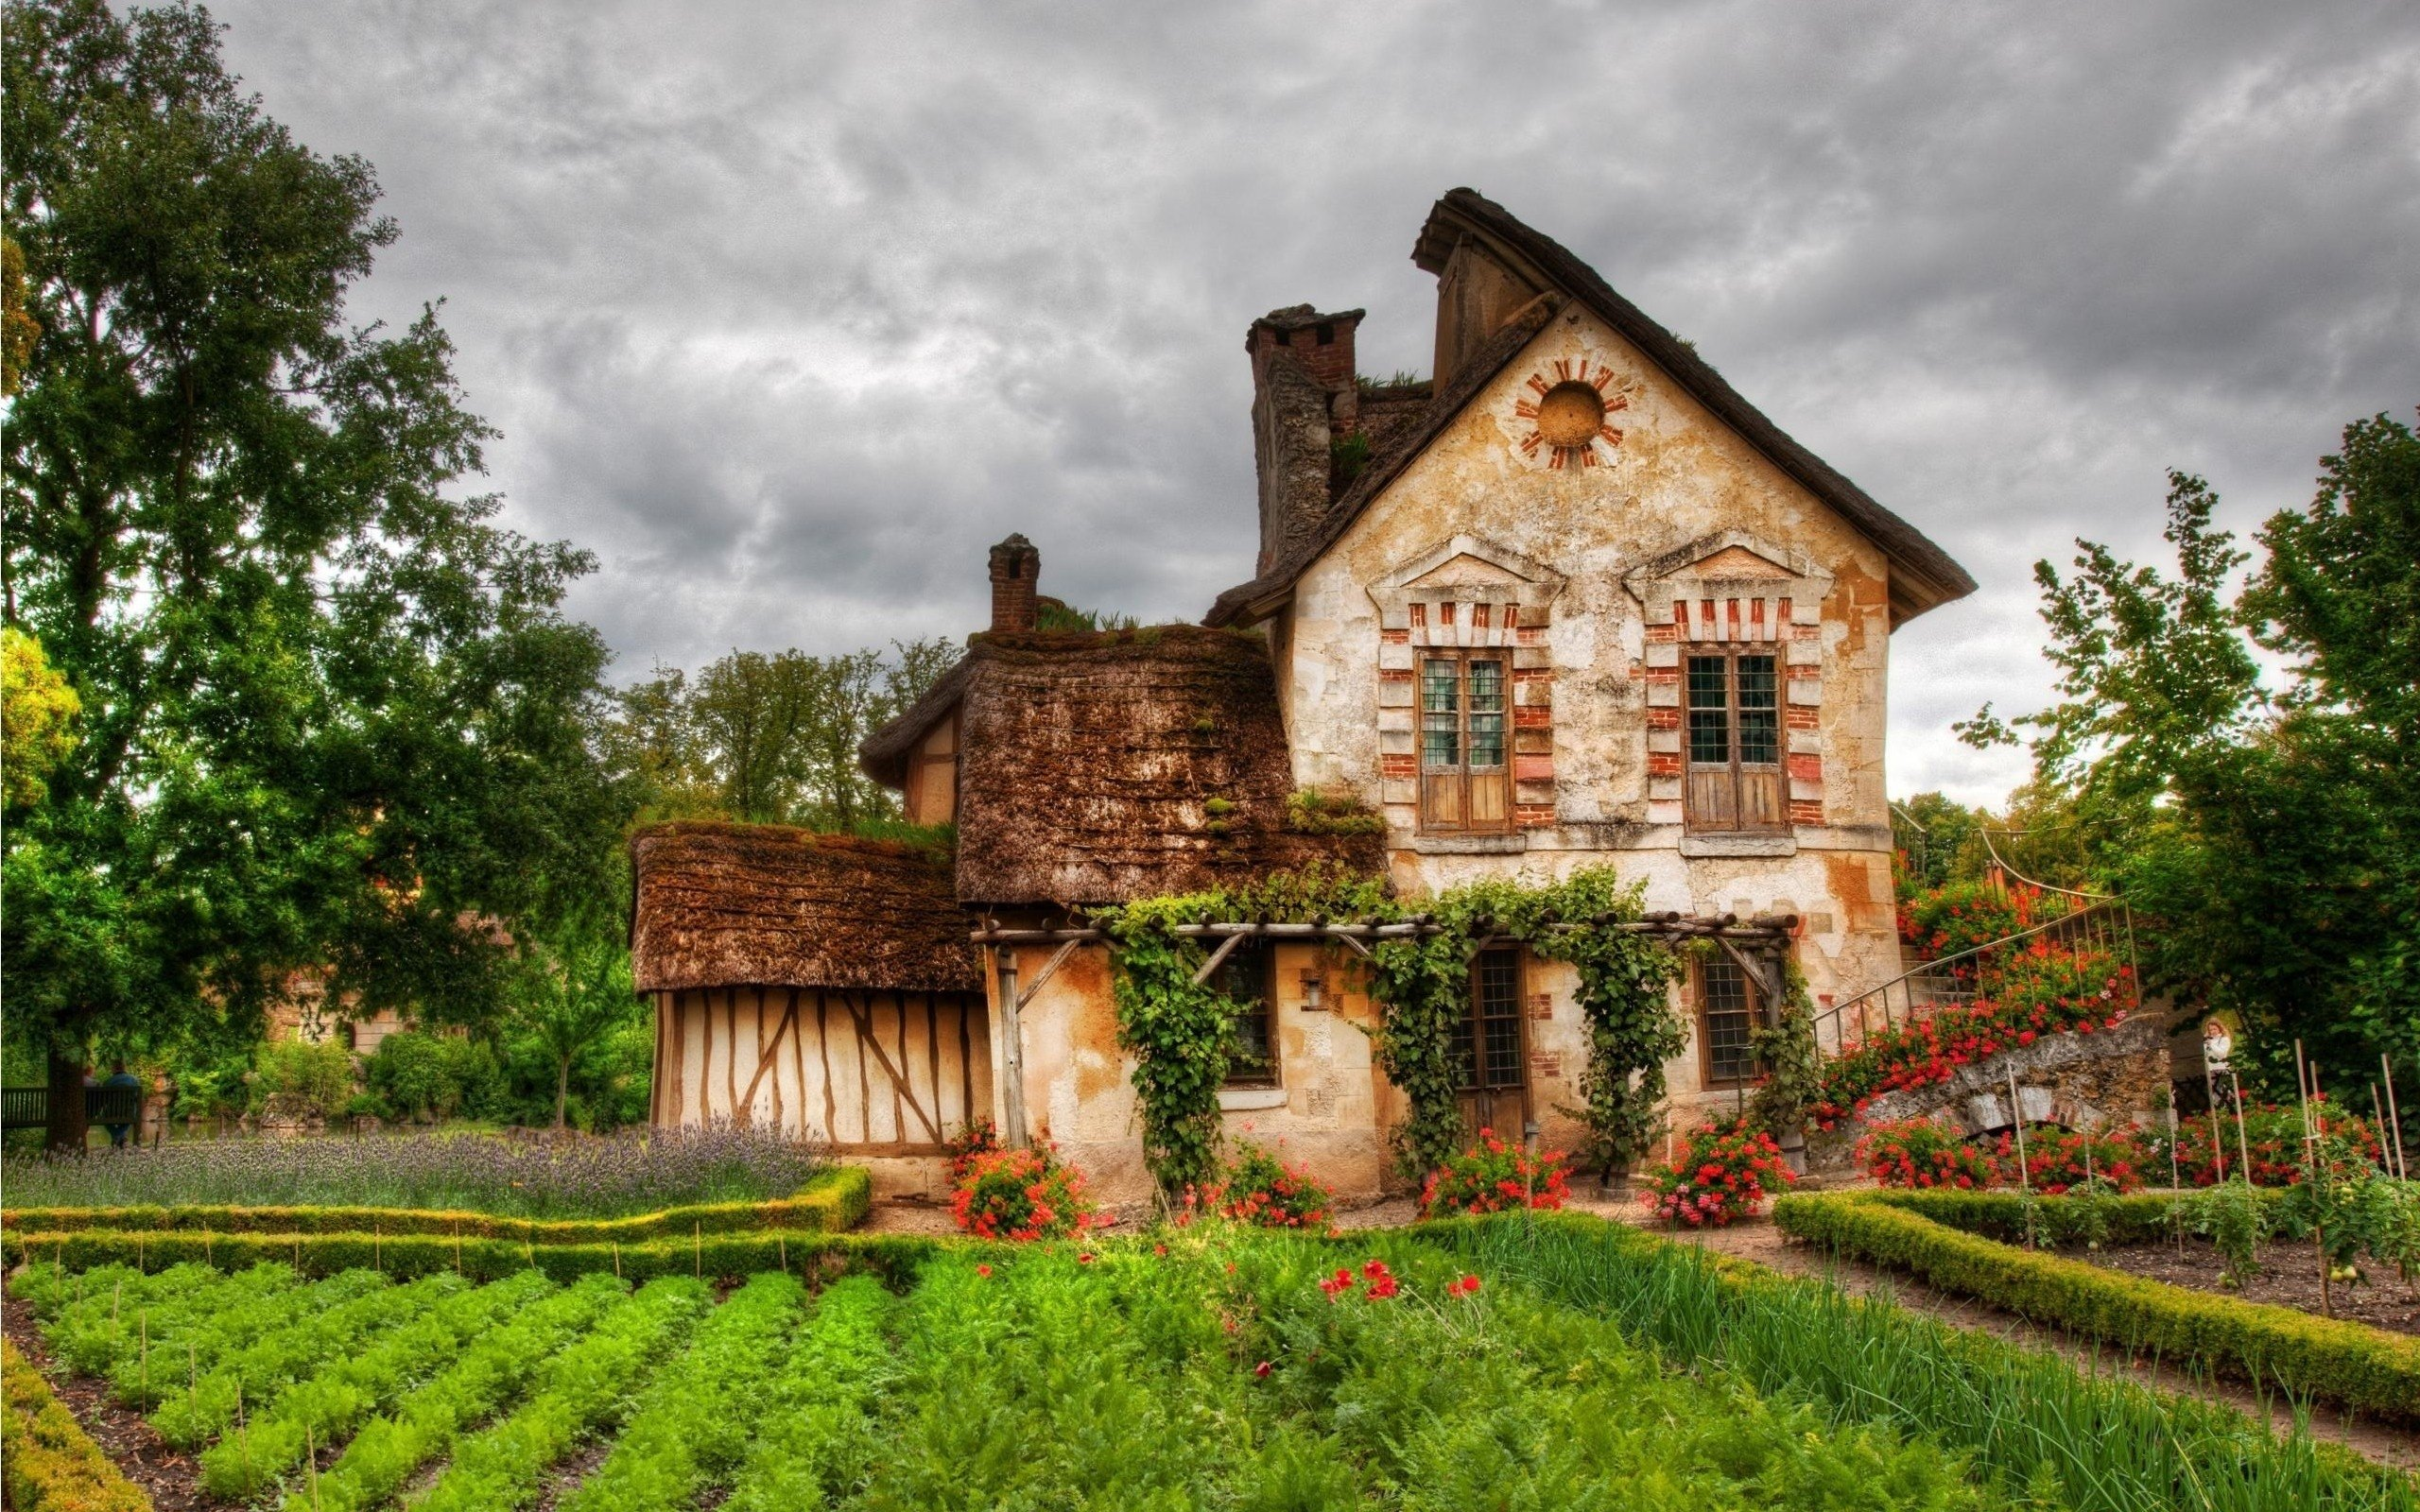 A beautiful cottage in england hd wallpaper for Wallpaper home uk